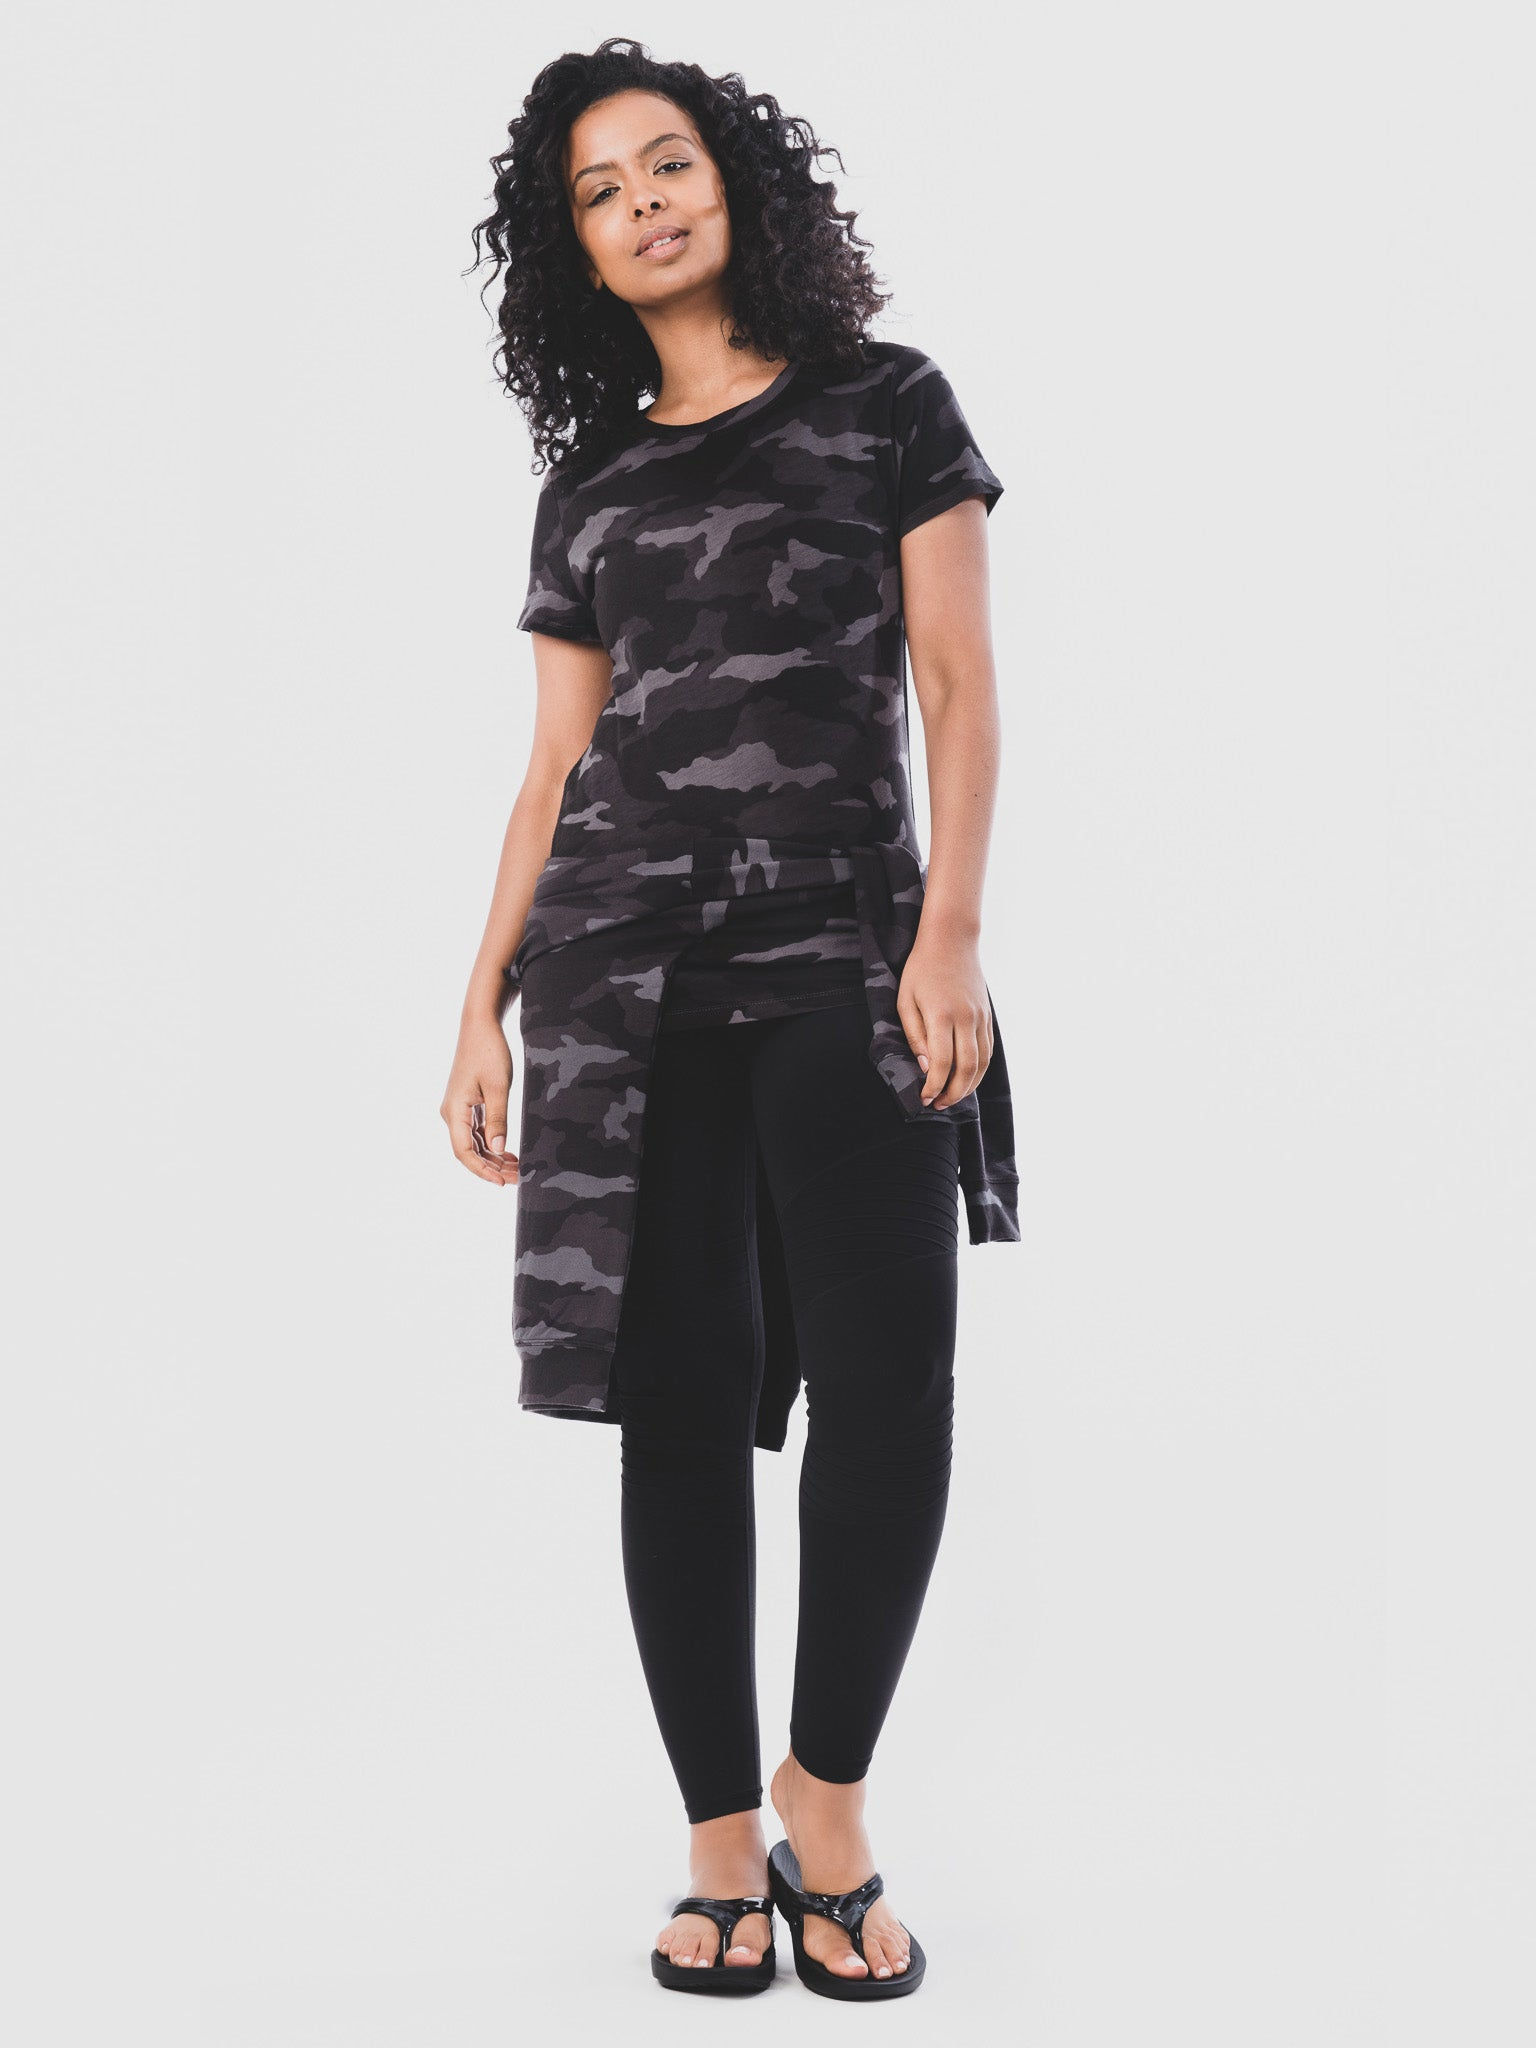 Women's OOlala Camo Black Full Length